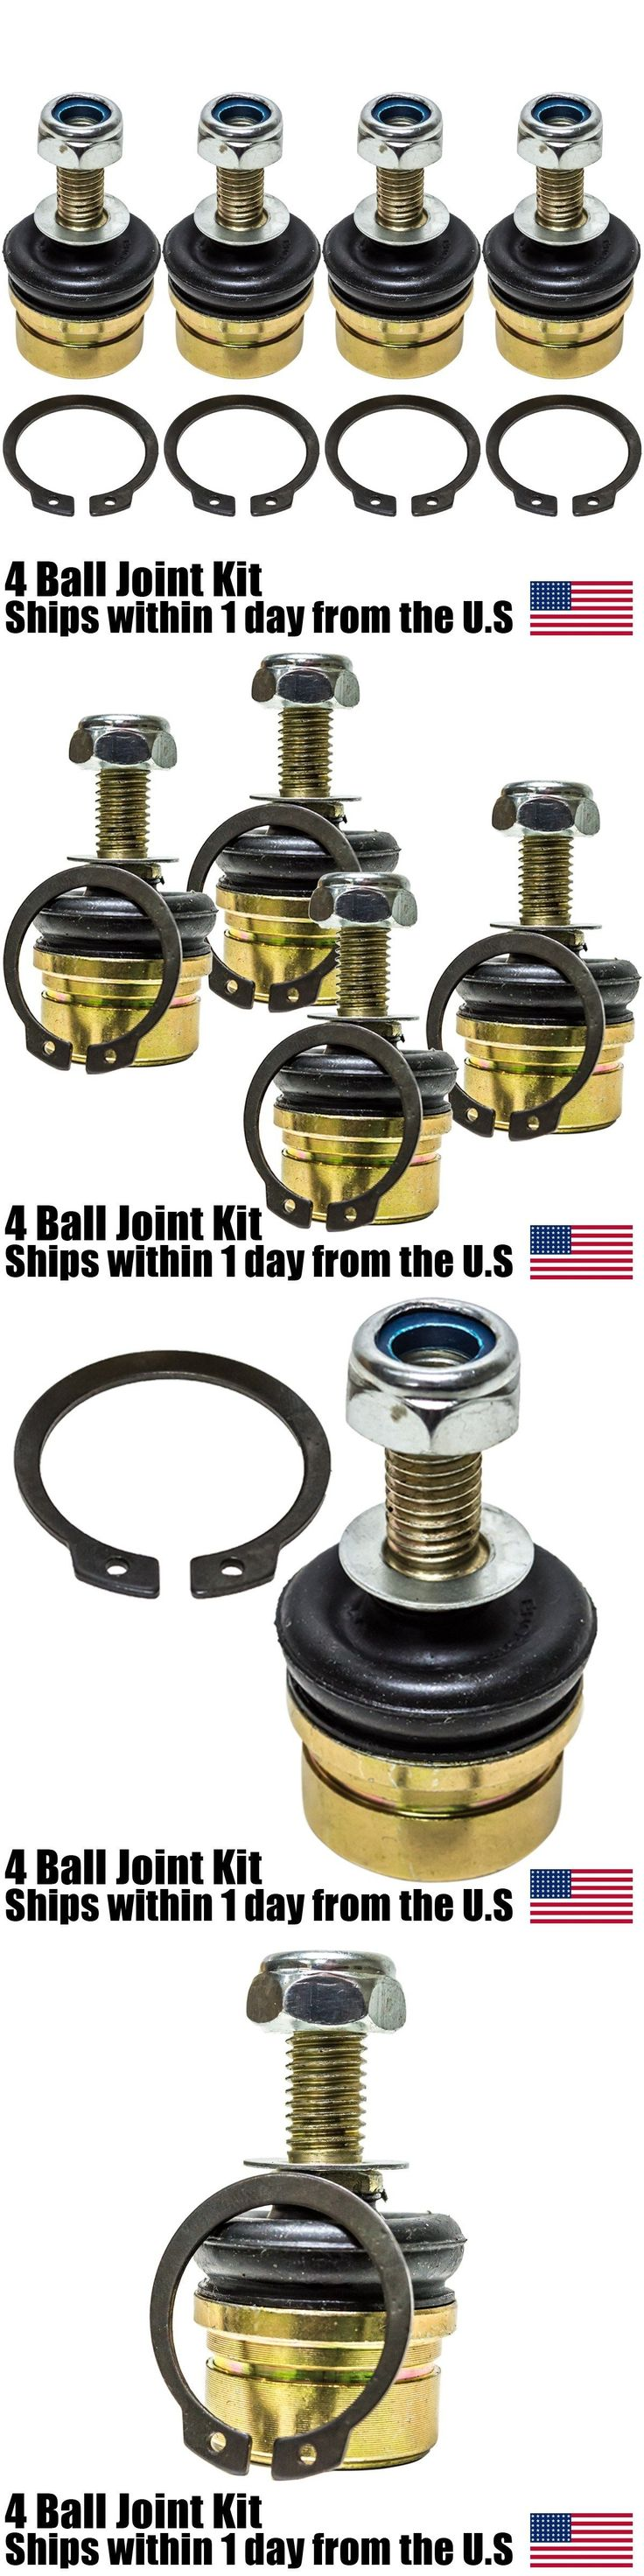 Parts and Accessories 64657: Standard Ball Joint Set For Yerf-Dog Spiderbox Go Kart 150Cc 4 Joints -> BUY IT NOW ONLY: $66 on eBay!